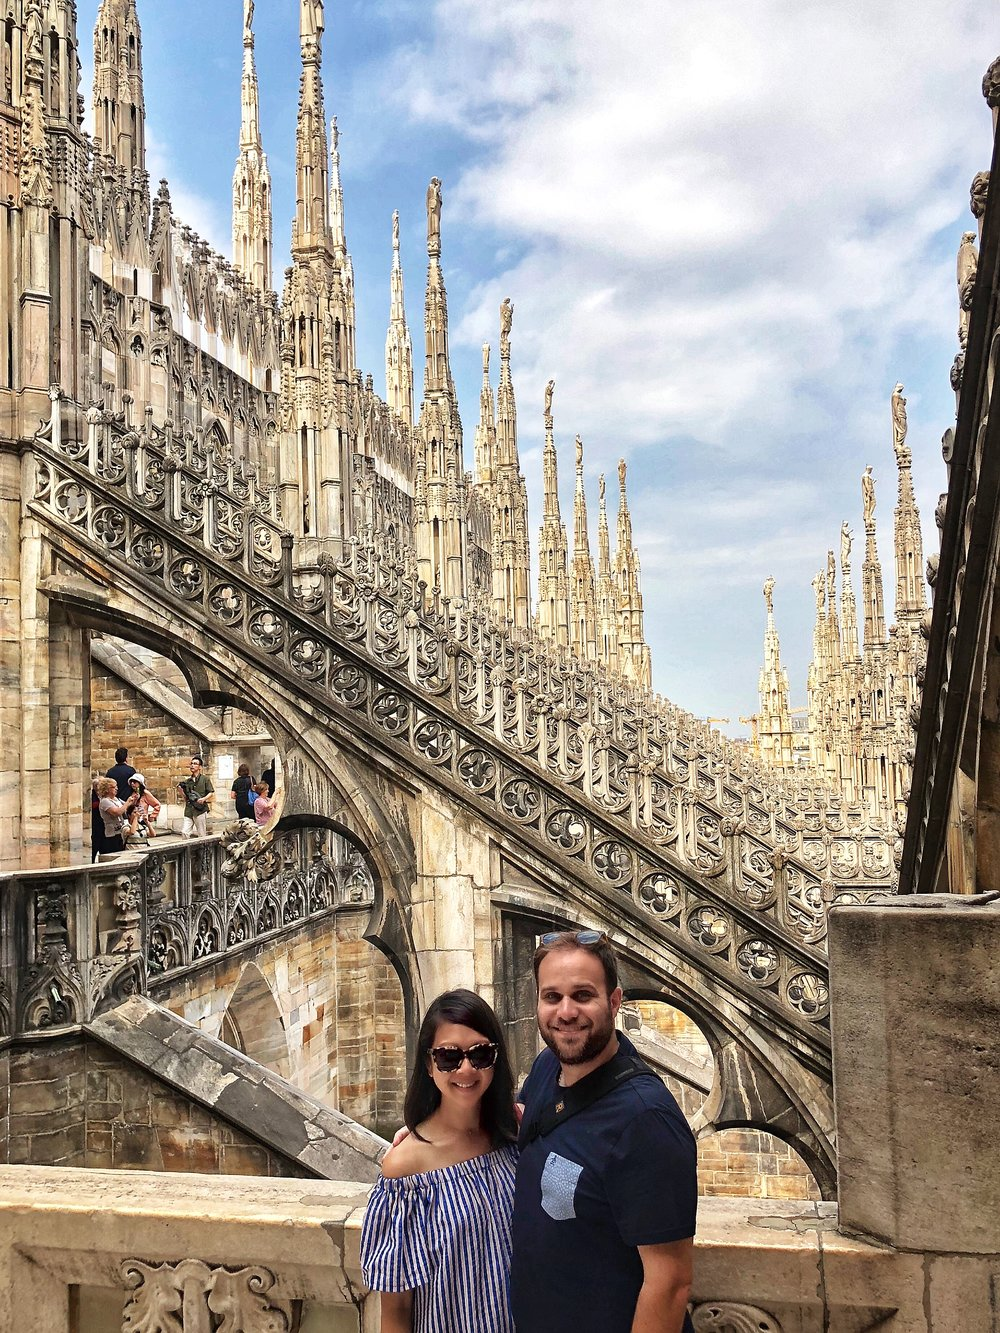 We highly recommend purchasing the ticket that allows you to visit the rooftop. Seeing the Duomo from the outside was breathtaking. I mean, look at all the detail behind us. We were also lucky to have such a perfectly clear day to enjoy it.